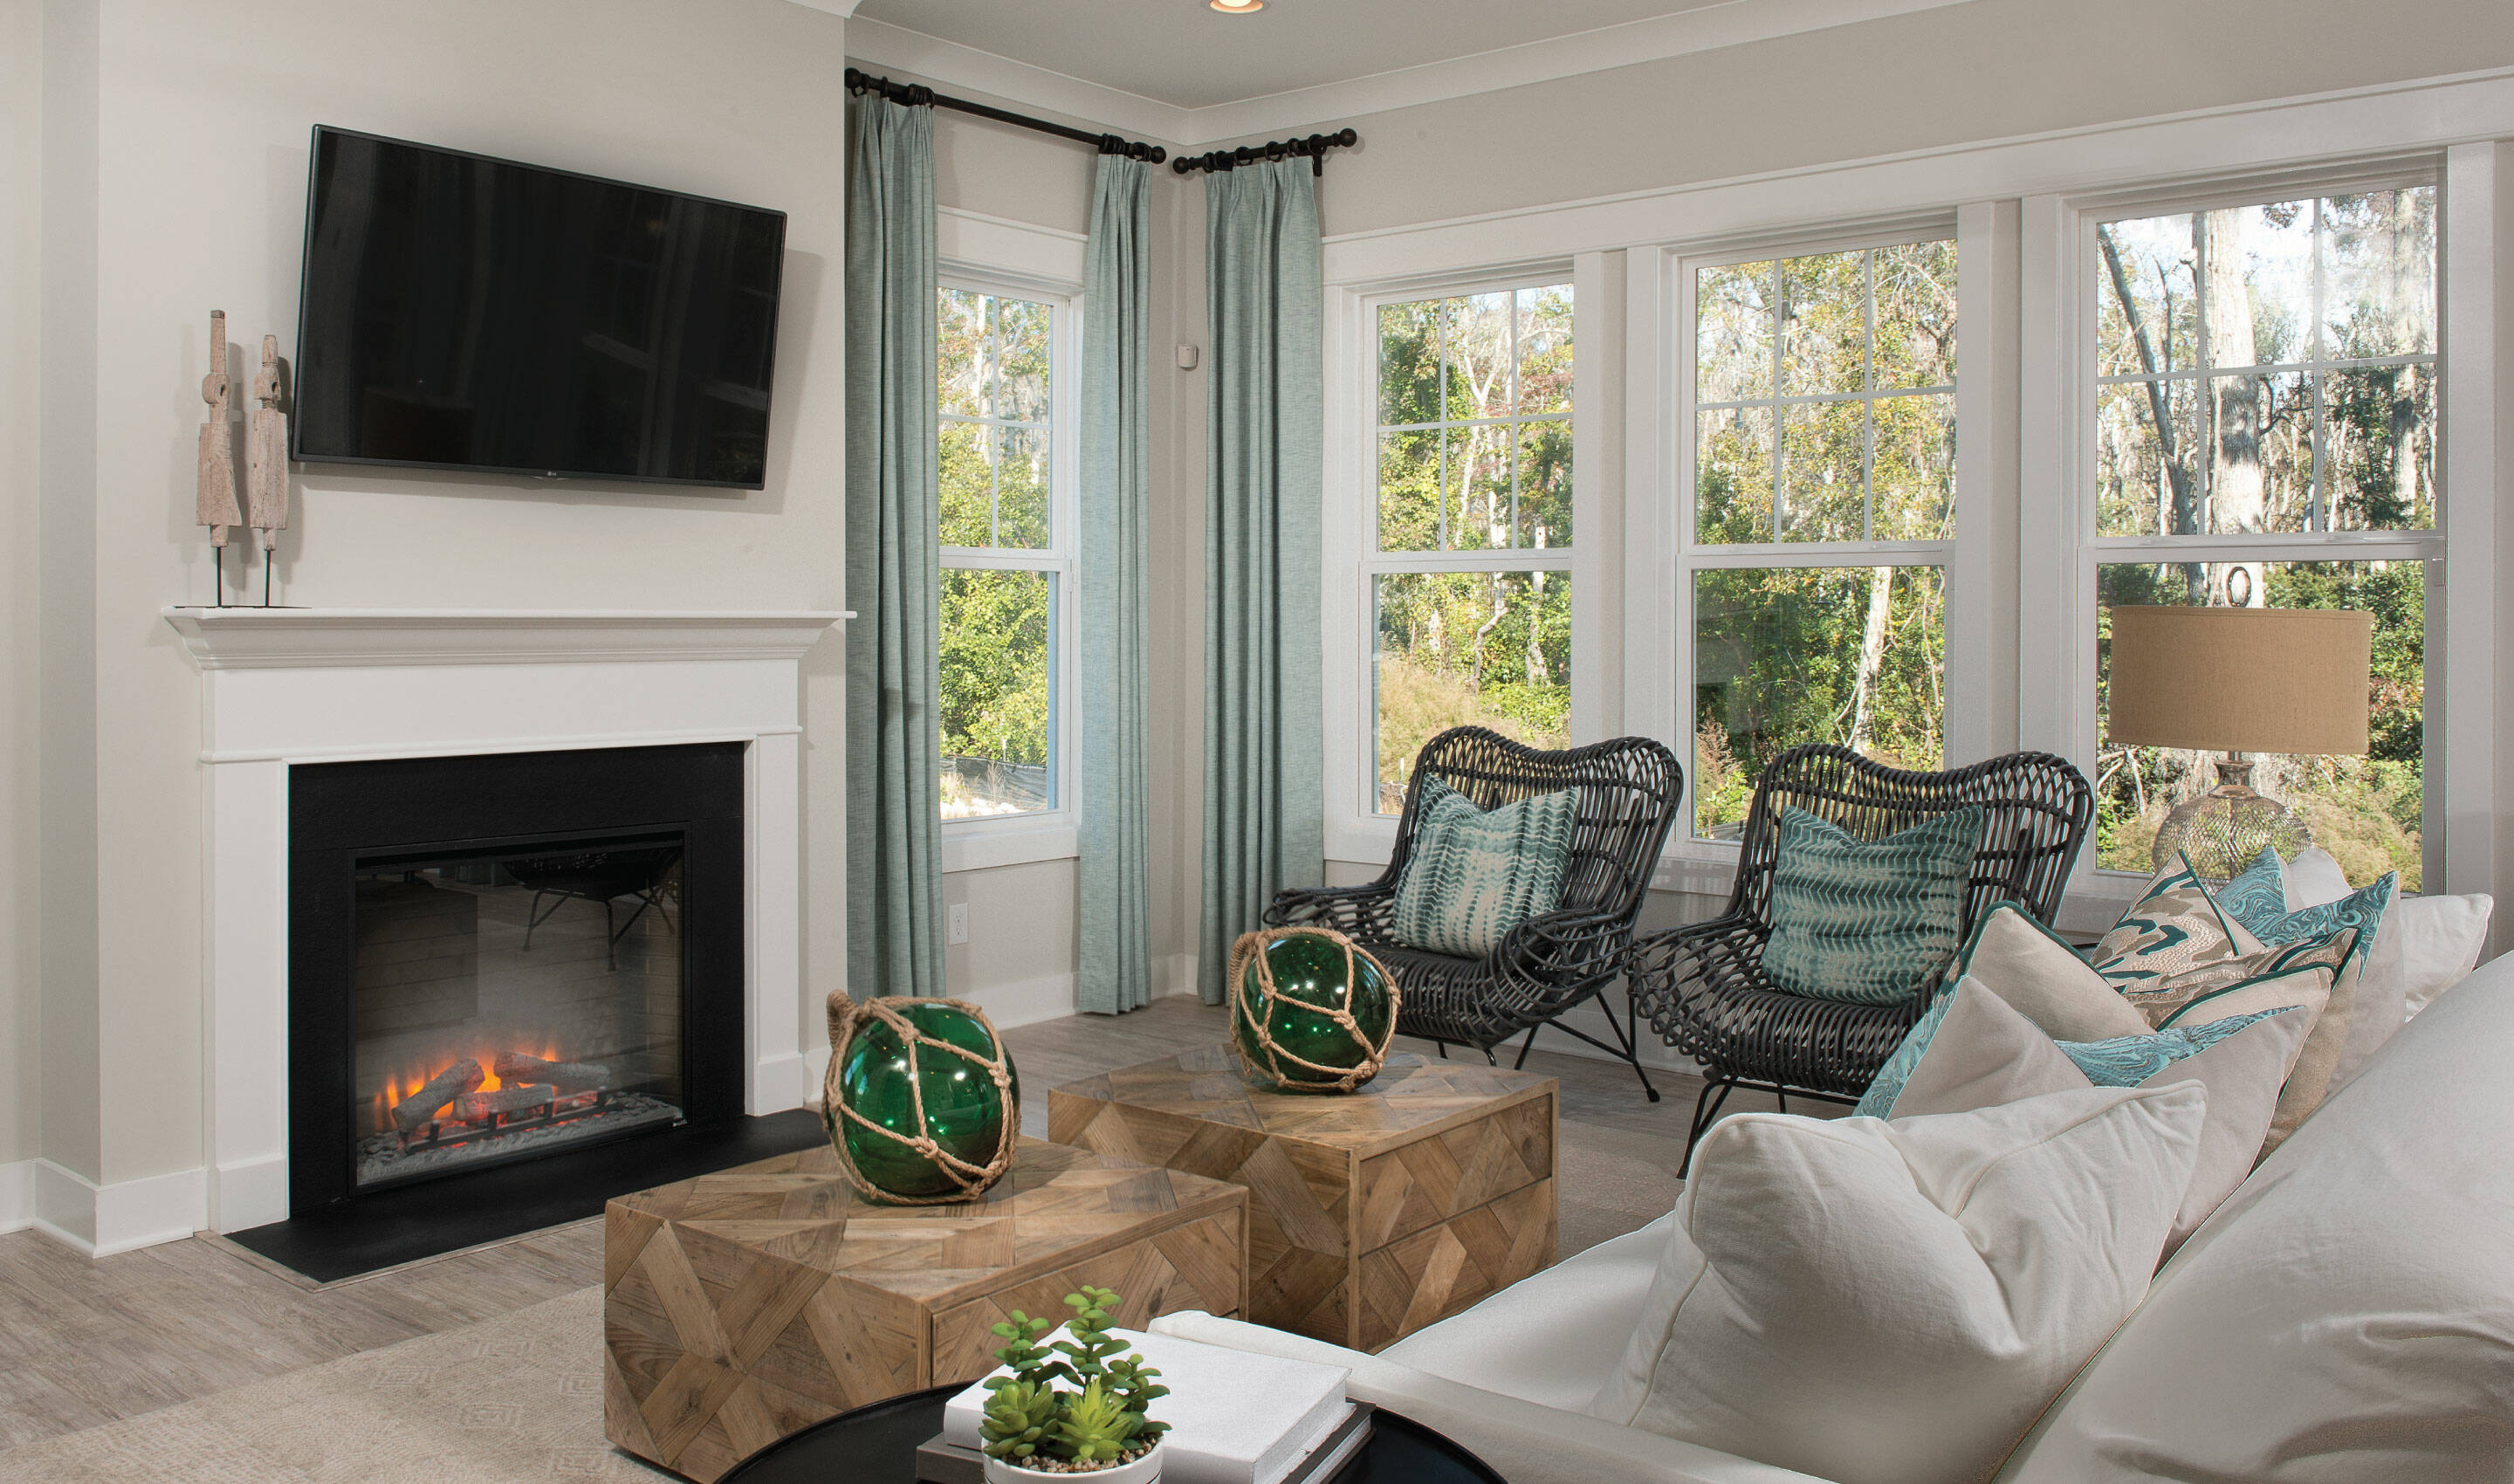 great room in surfside at magnolia place new townhomes in hilton head island south carolina